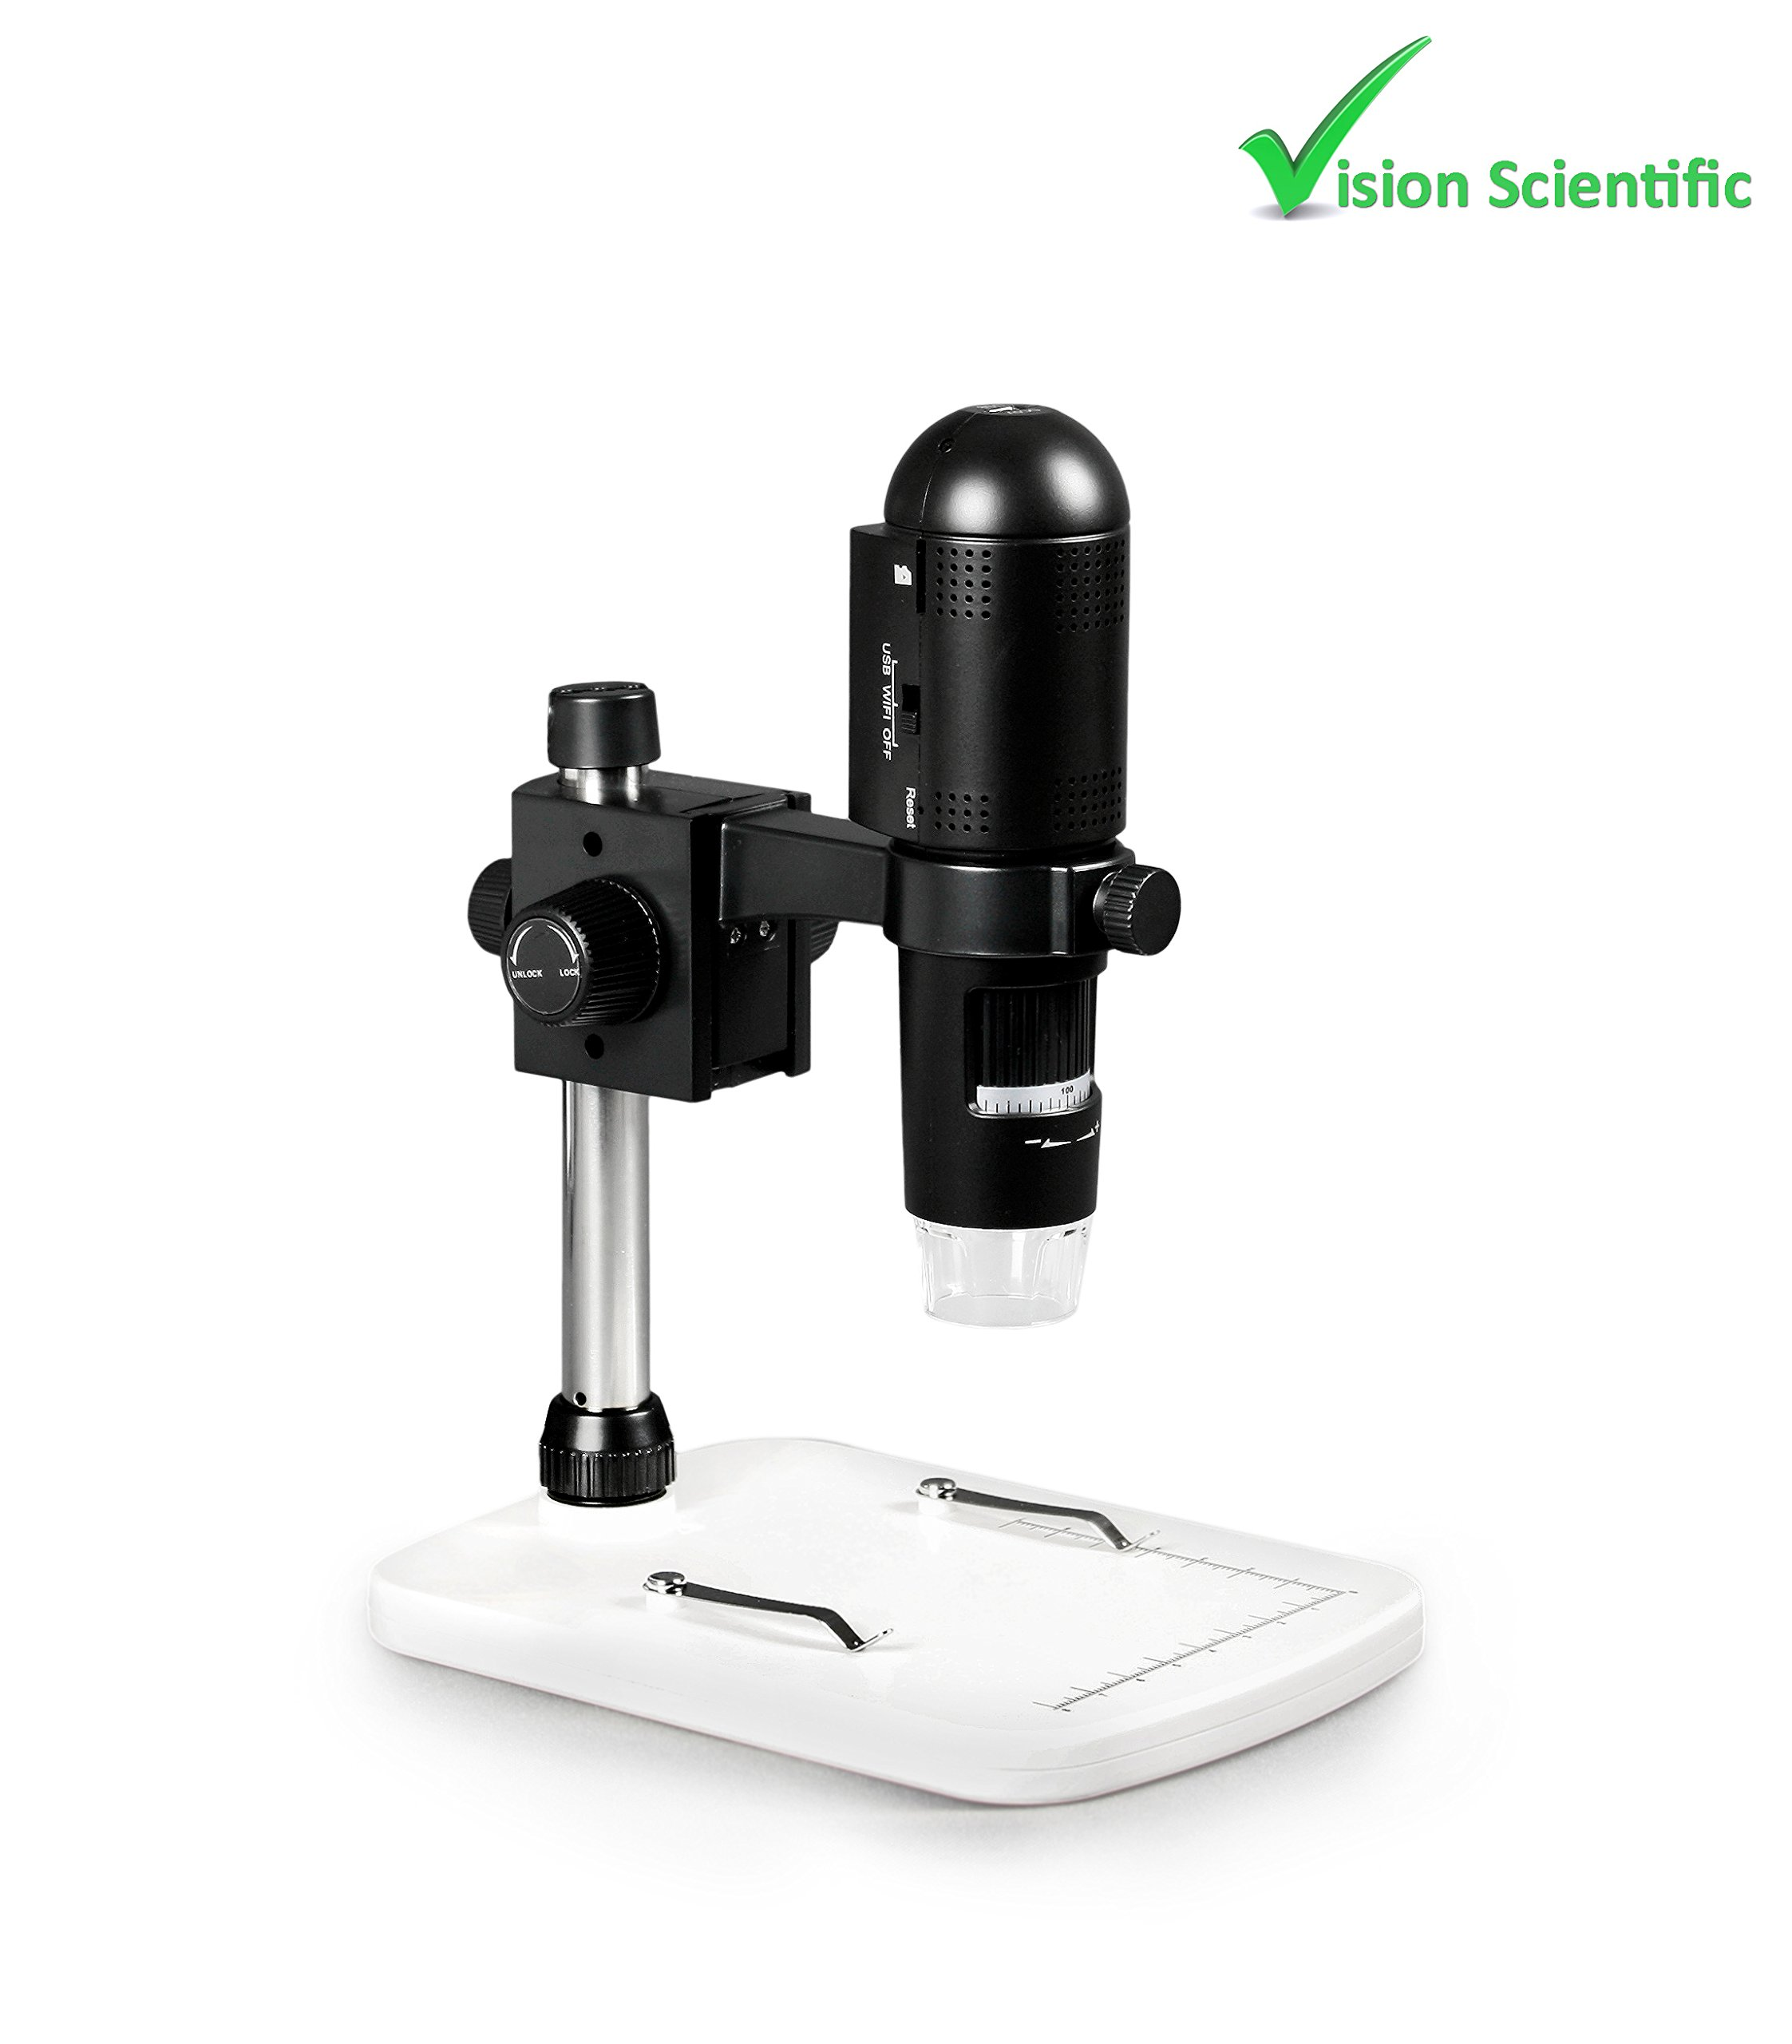 Vision Scientific VMD003 1080P Full HD Wi-Fi Digital Microscope with 3MP Image Sensor, 220x Magnification, 6 LED Illumination with Intensity Control, USB, iOS/Android/PC Compatible by Vision Scientific